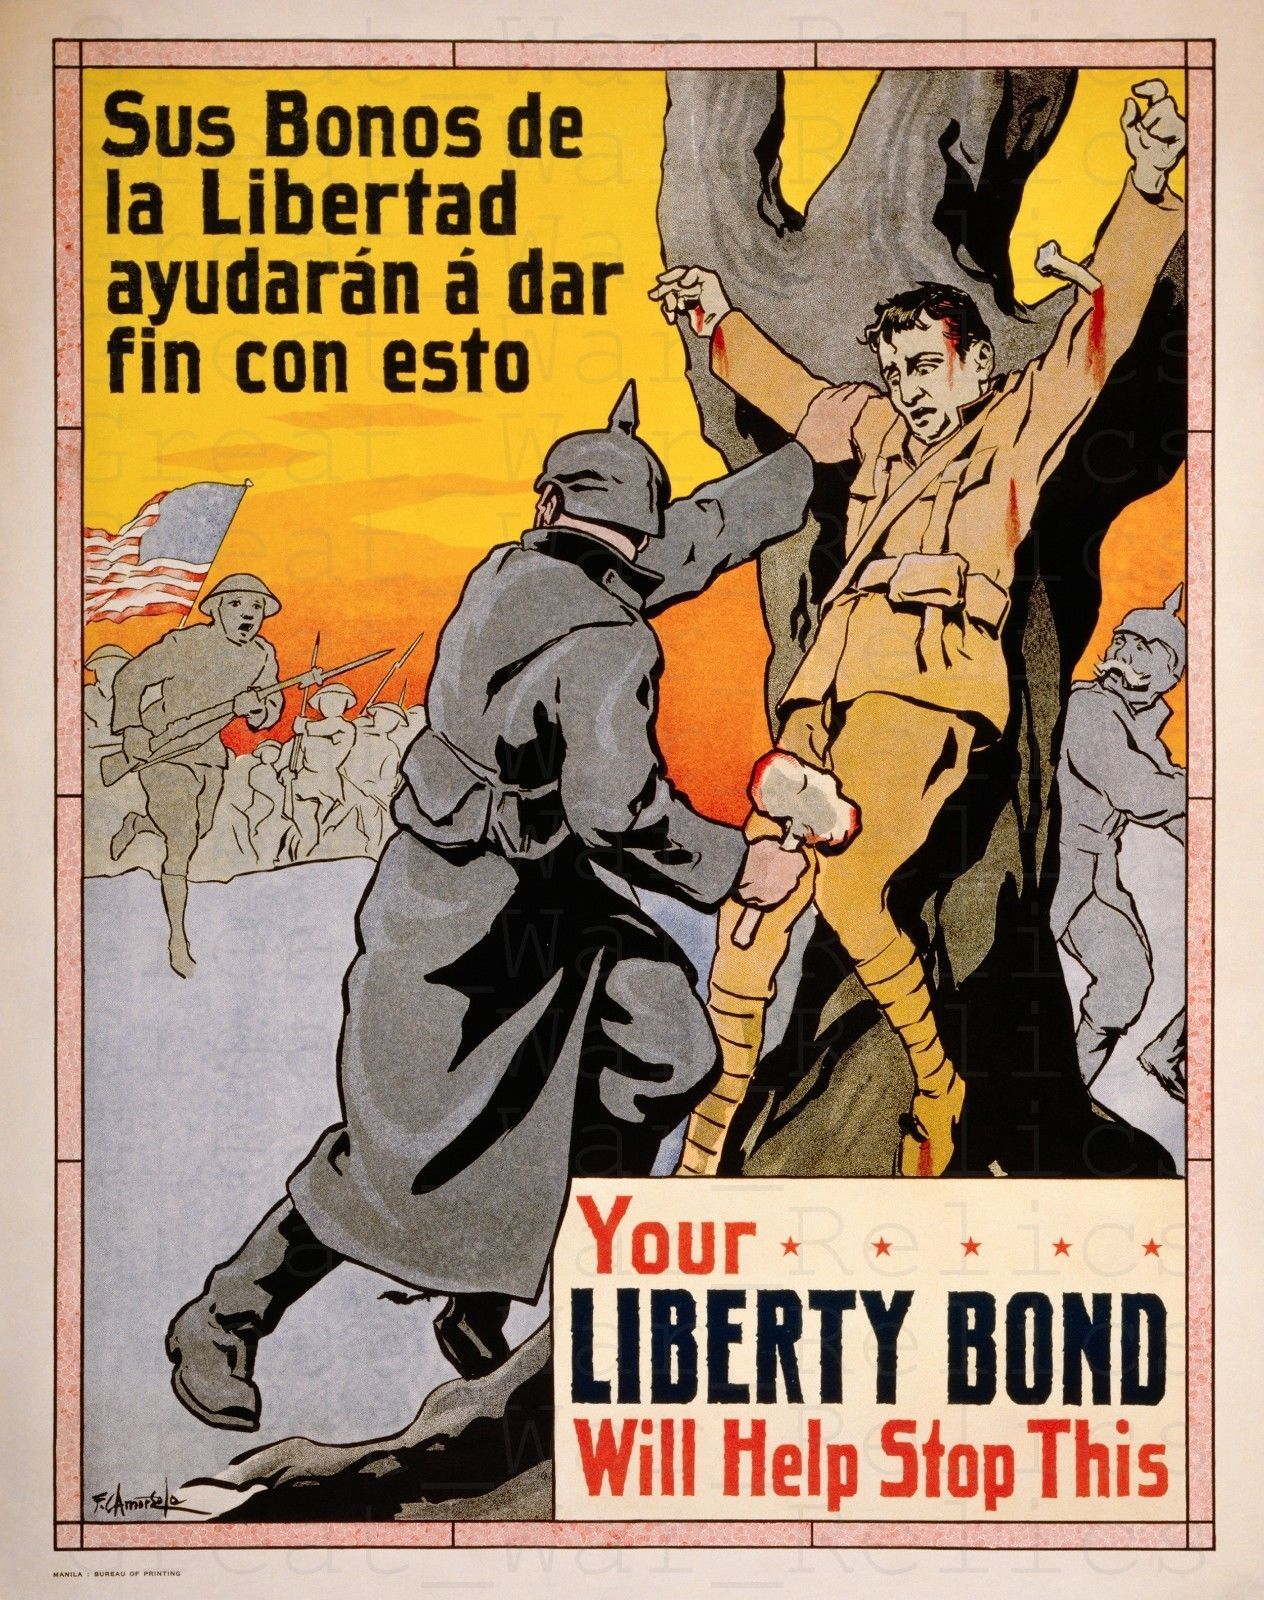 Destroy This Mad Brute Enlist Wwi American Anti German Poster 1917 Propagandaposters Wwii Posters Patriotic Posters Propaganda Posters